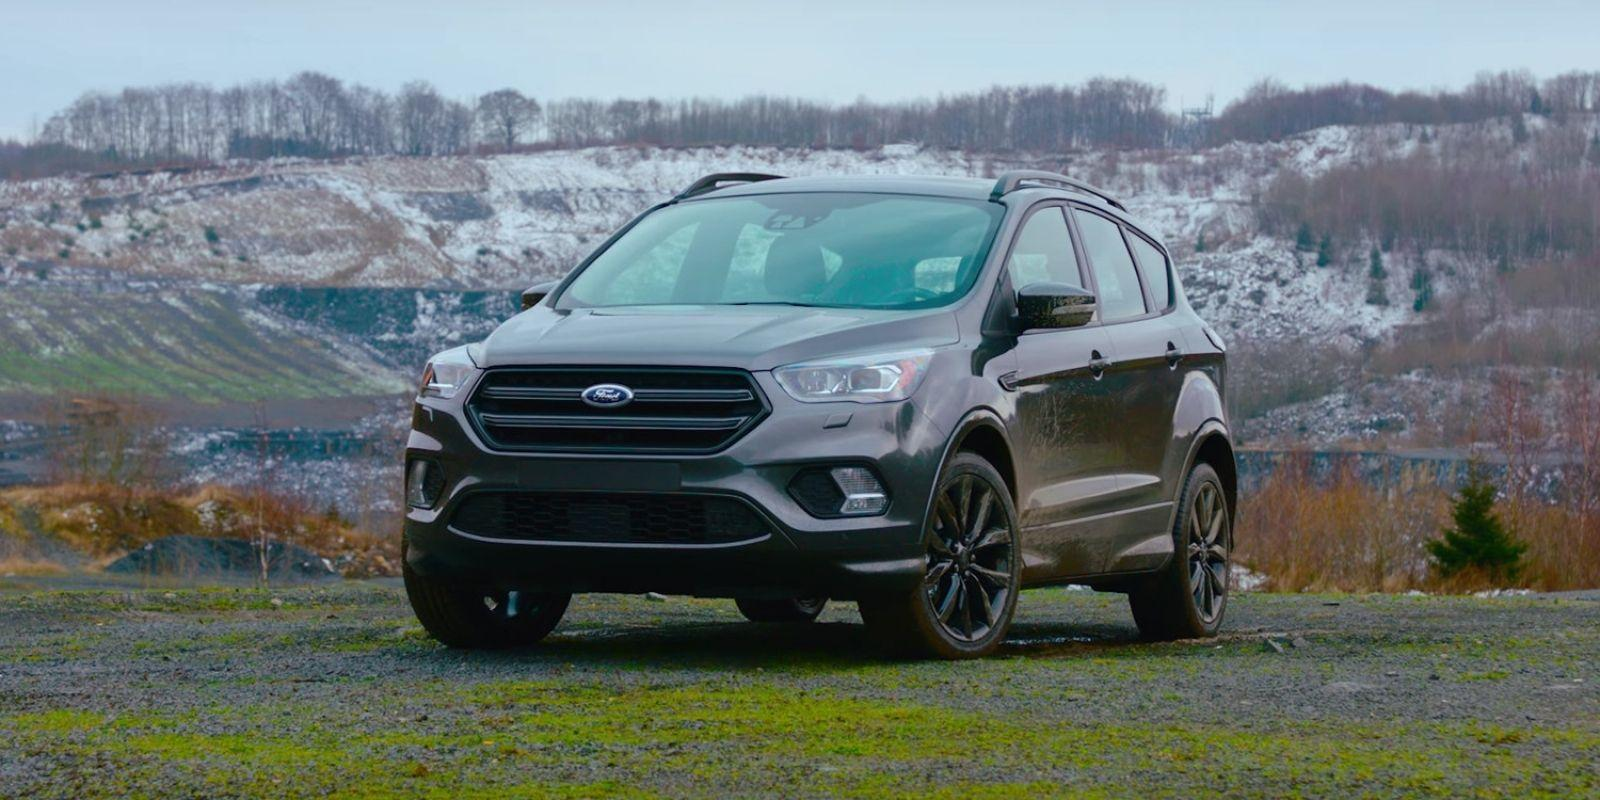 Ford Kuga 2017 Picture Wallpaper | Ford | Kuga - Ford ecosport, Ford ...